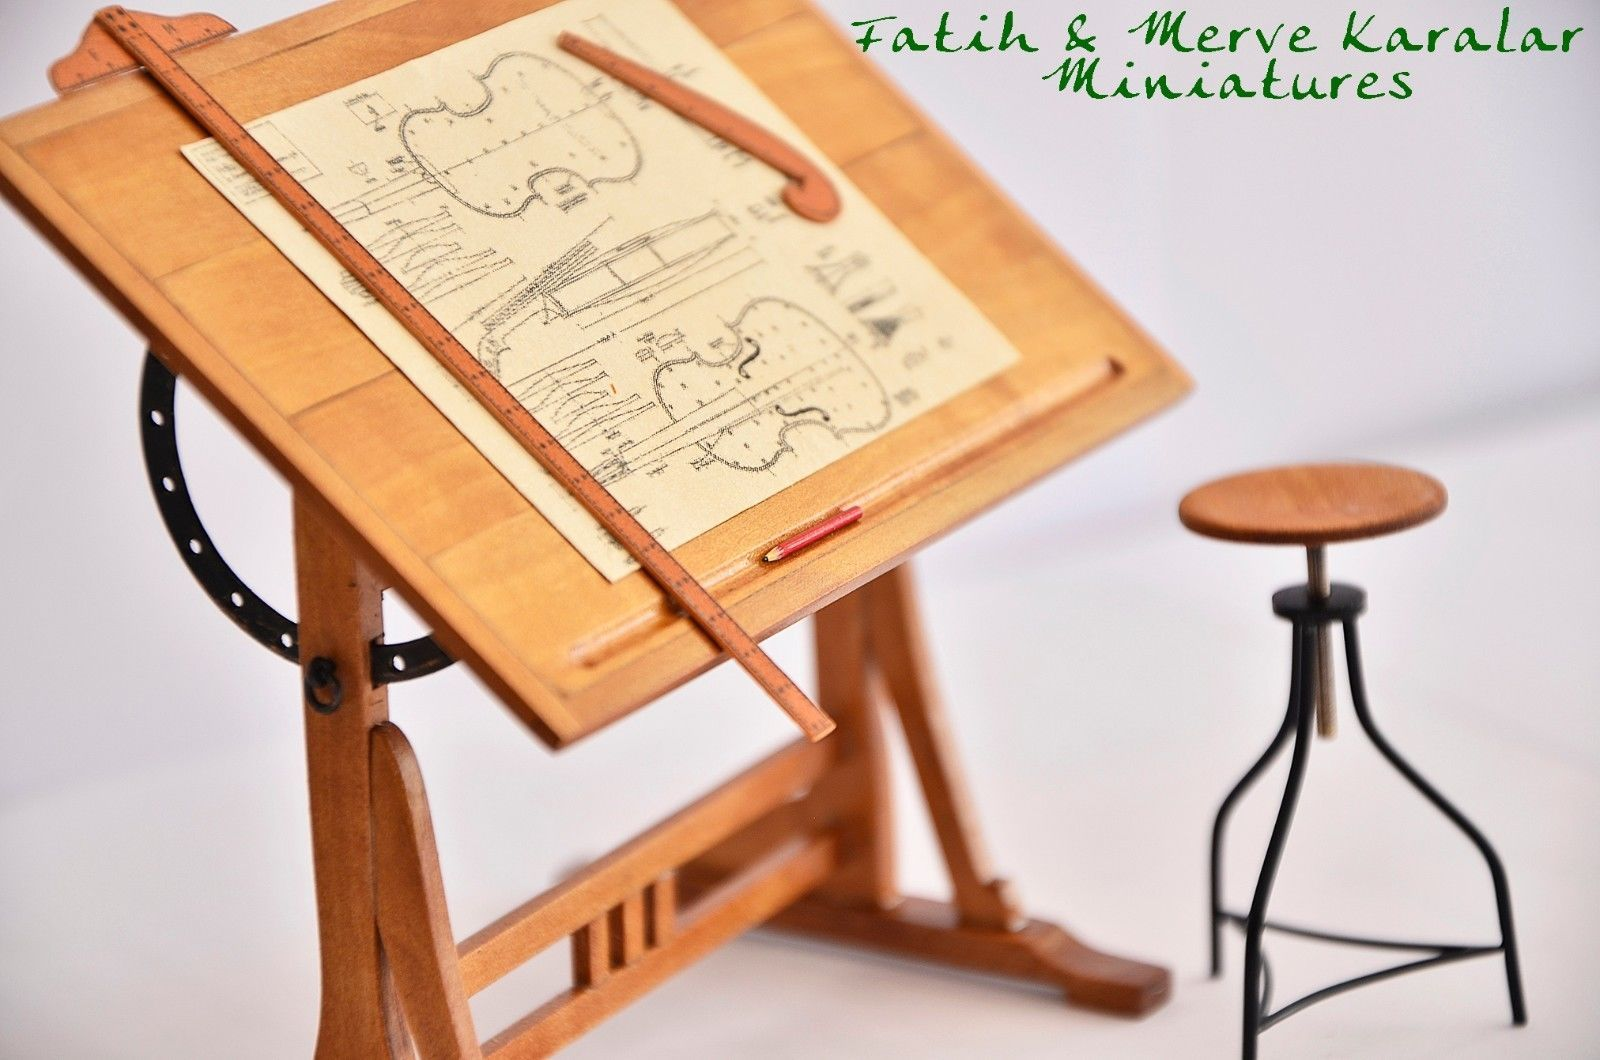 Revolving Chair For Study Small Circular Dining Table And Chairs Dollhouse Miniatures Handmade 1920s French Drafting